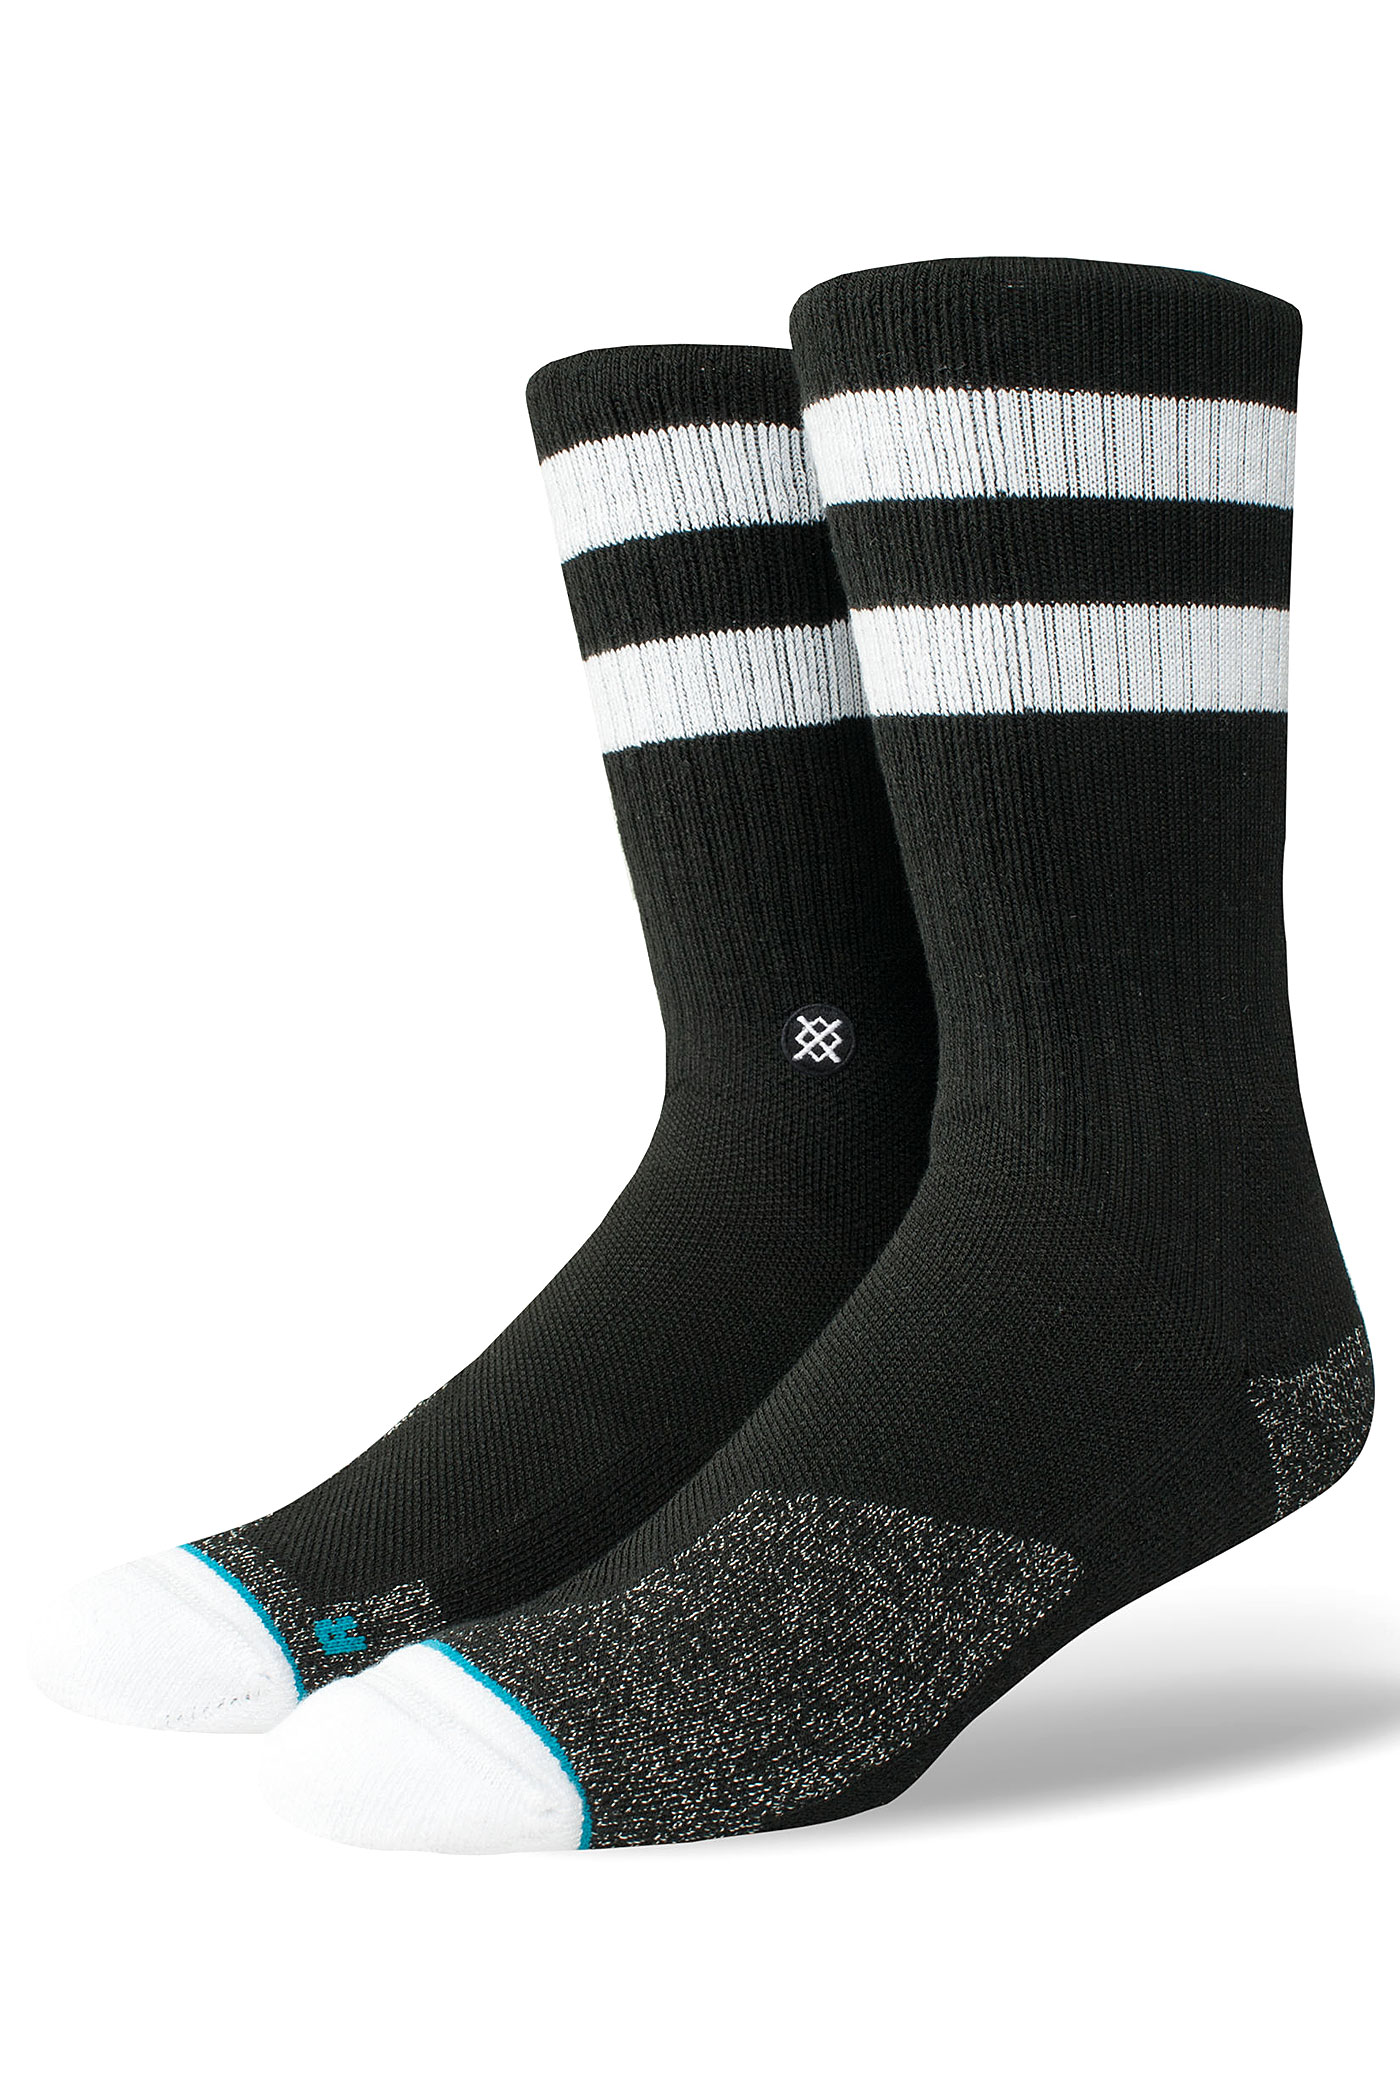 stance skate deathless v2 chaussettes us 6 12 black achetez sur skatedeluxe. Black Bedroom Furniture Sets. Home Design Ideas